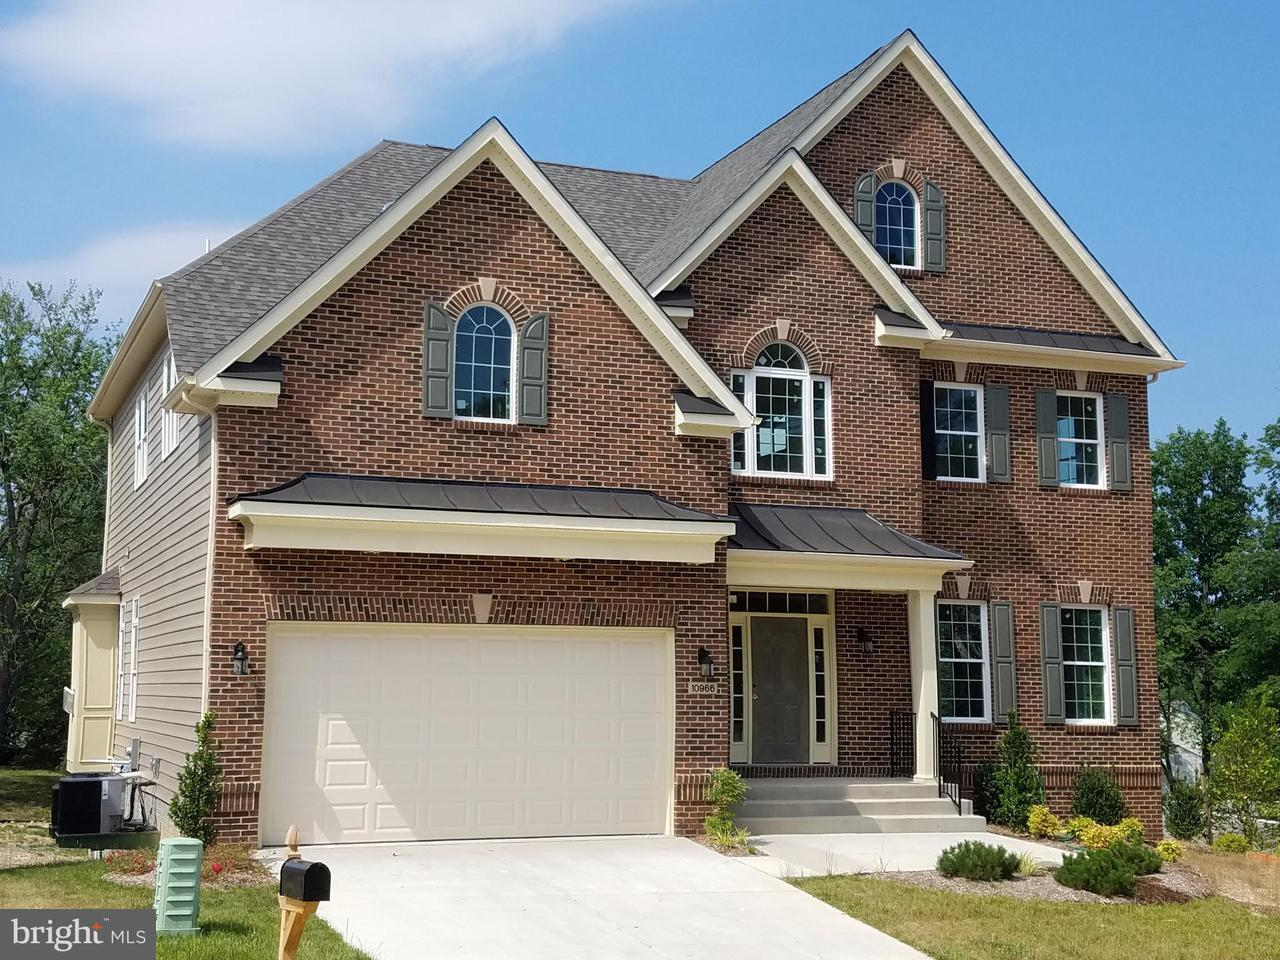 Single Family Home for Sale at 10966 THOMPSONS CREEK Circle 10966 THOMPSONS CREEK Circle Fairfax Station, Virginia 22039 United States